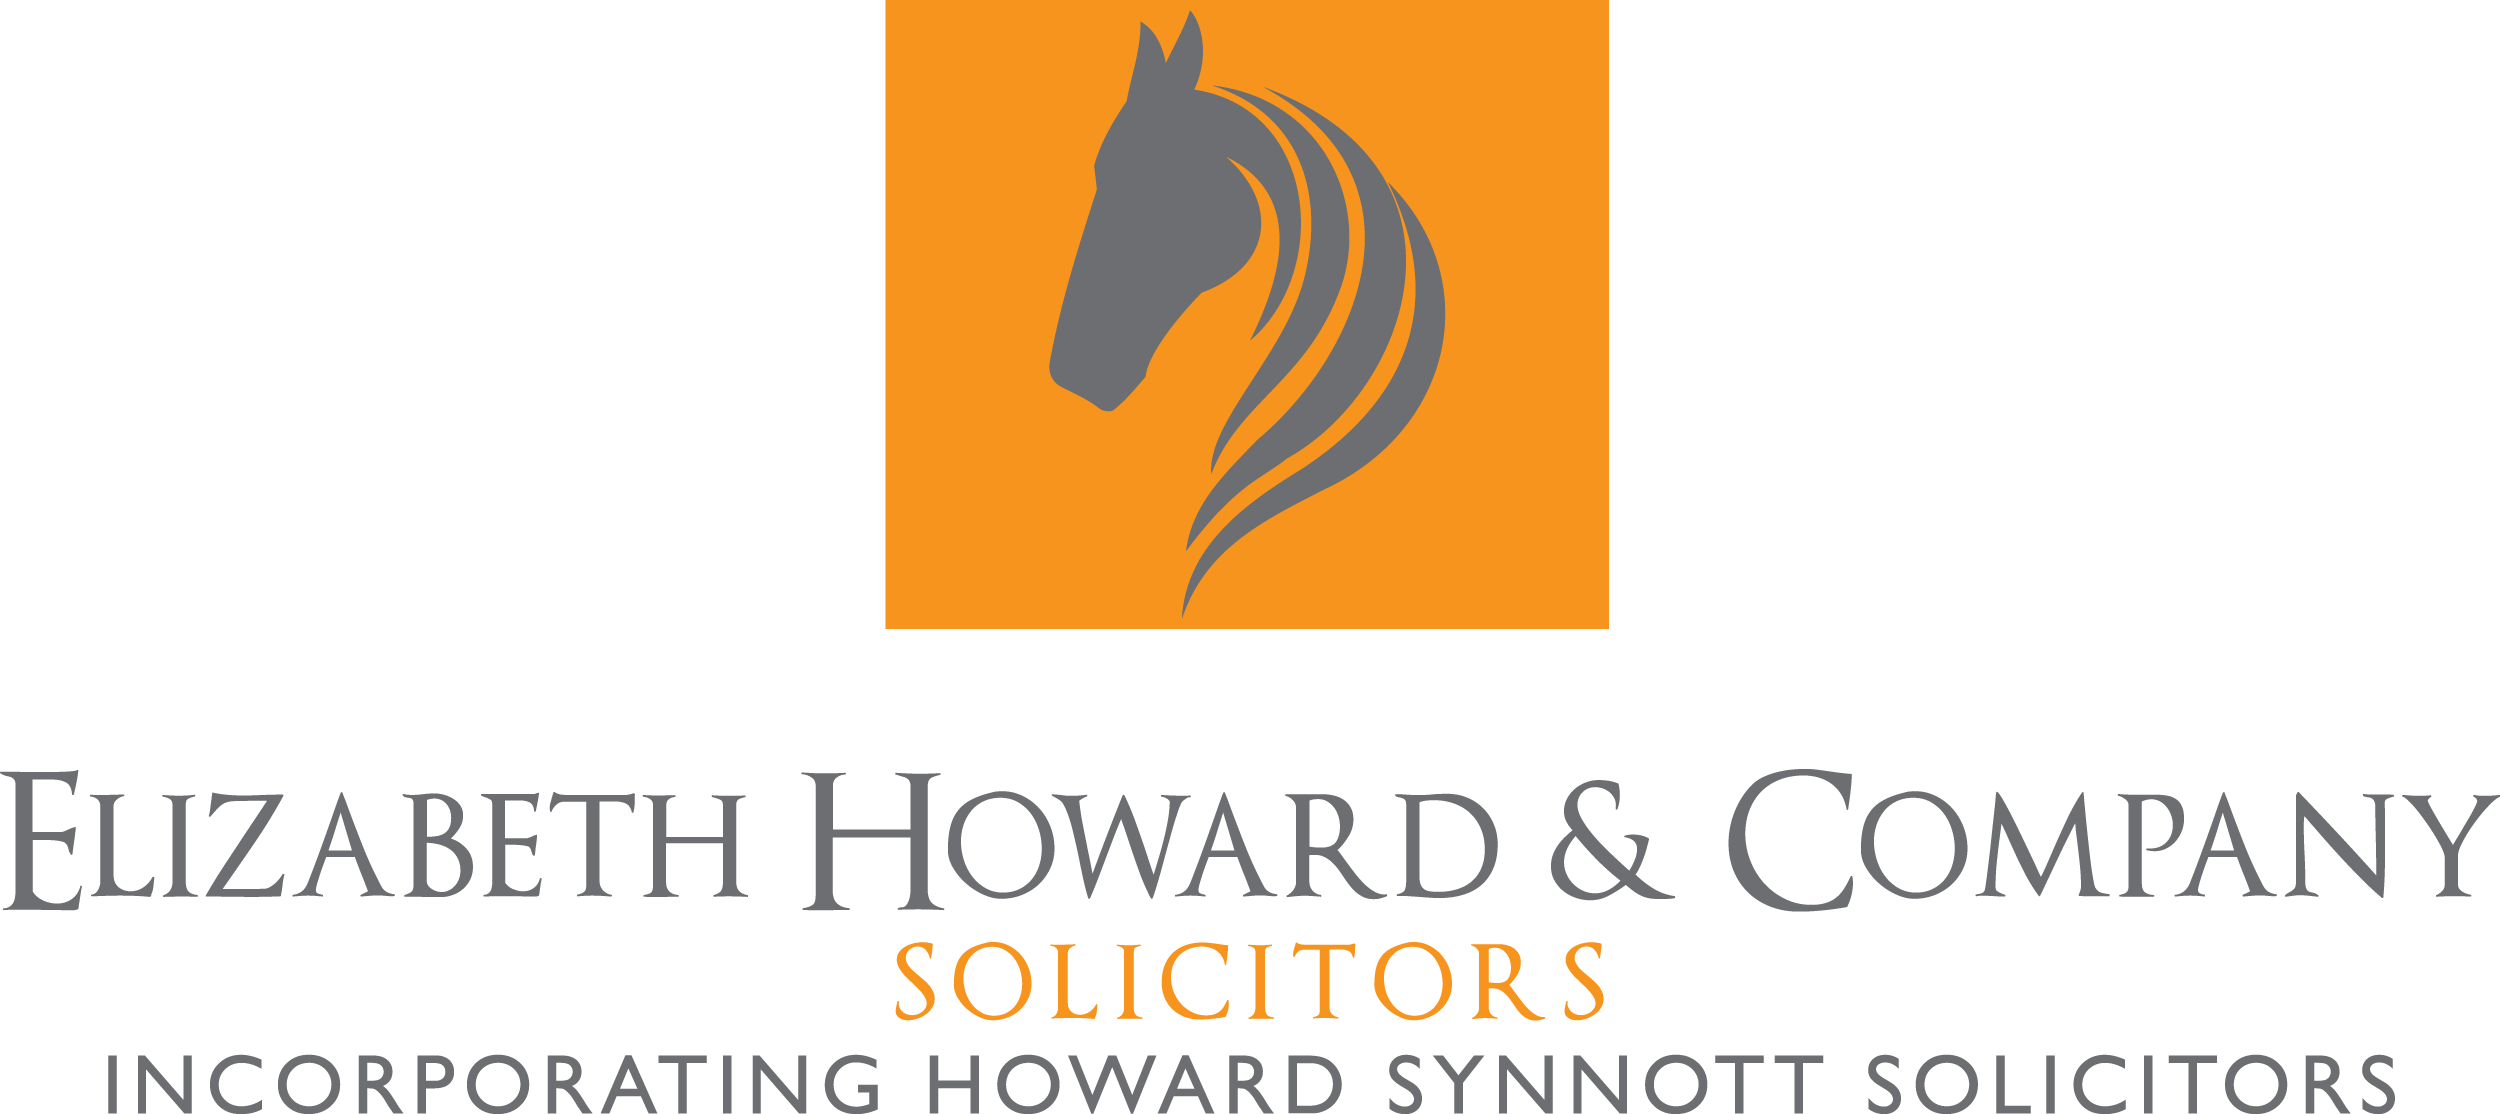 Elizabeth Howard and Company Solicitors